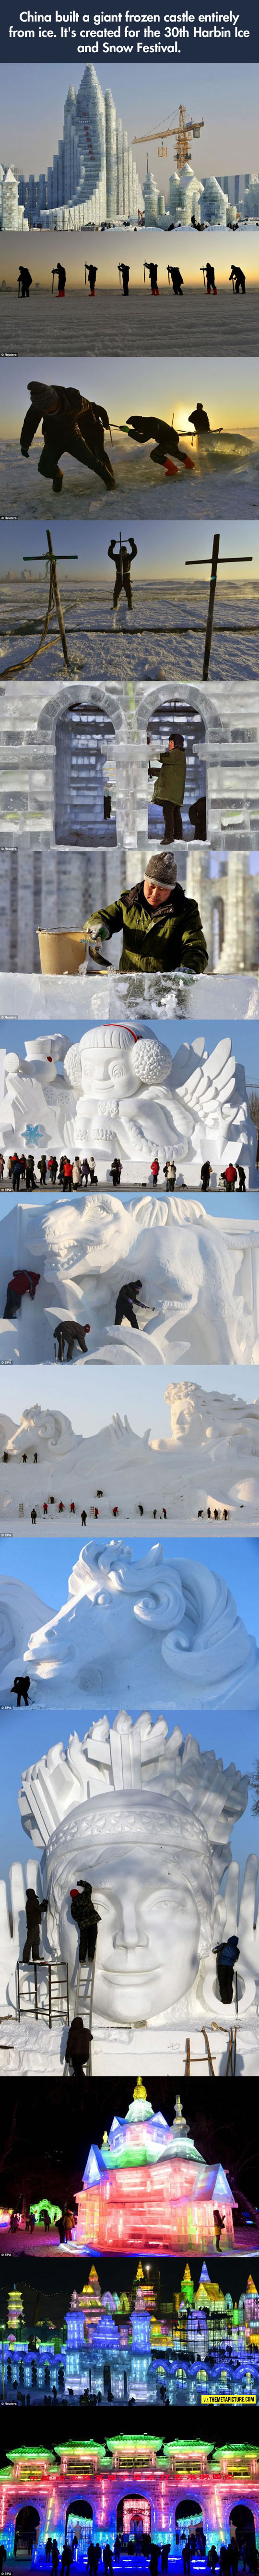 funny-china-ice-snow-festival-castle